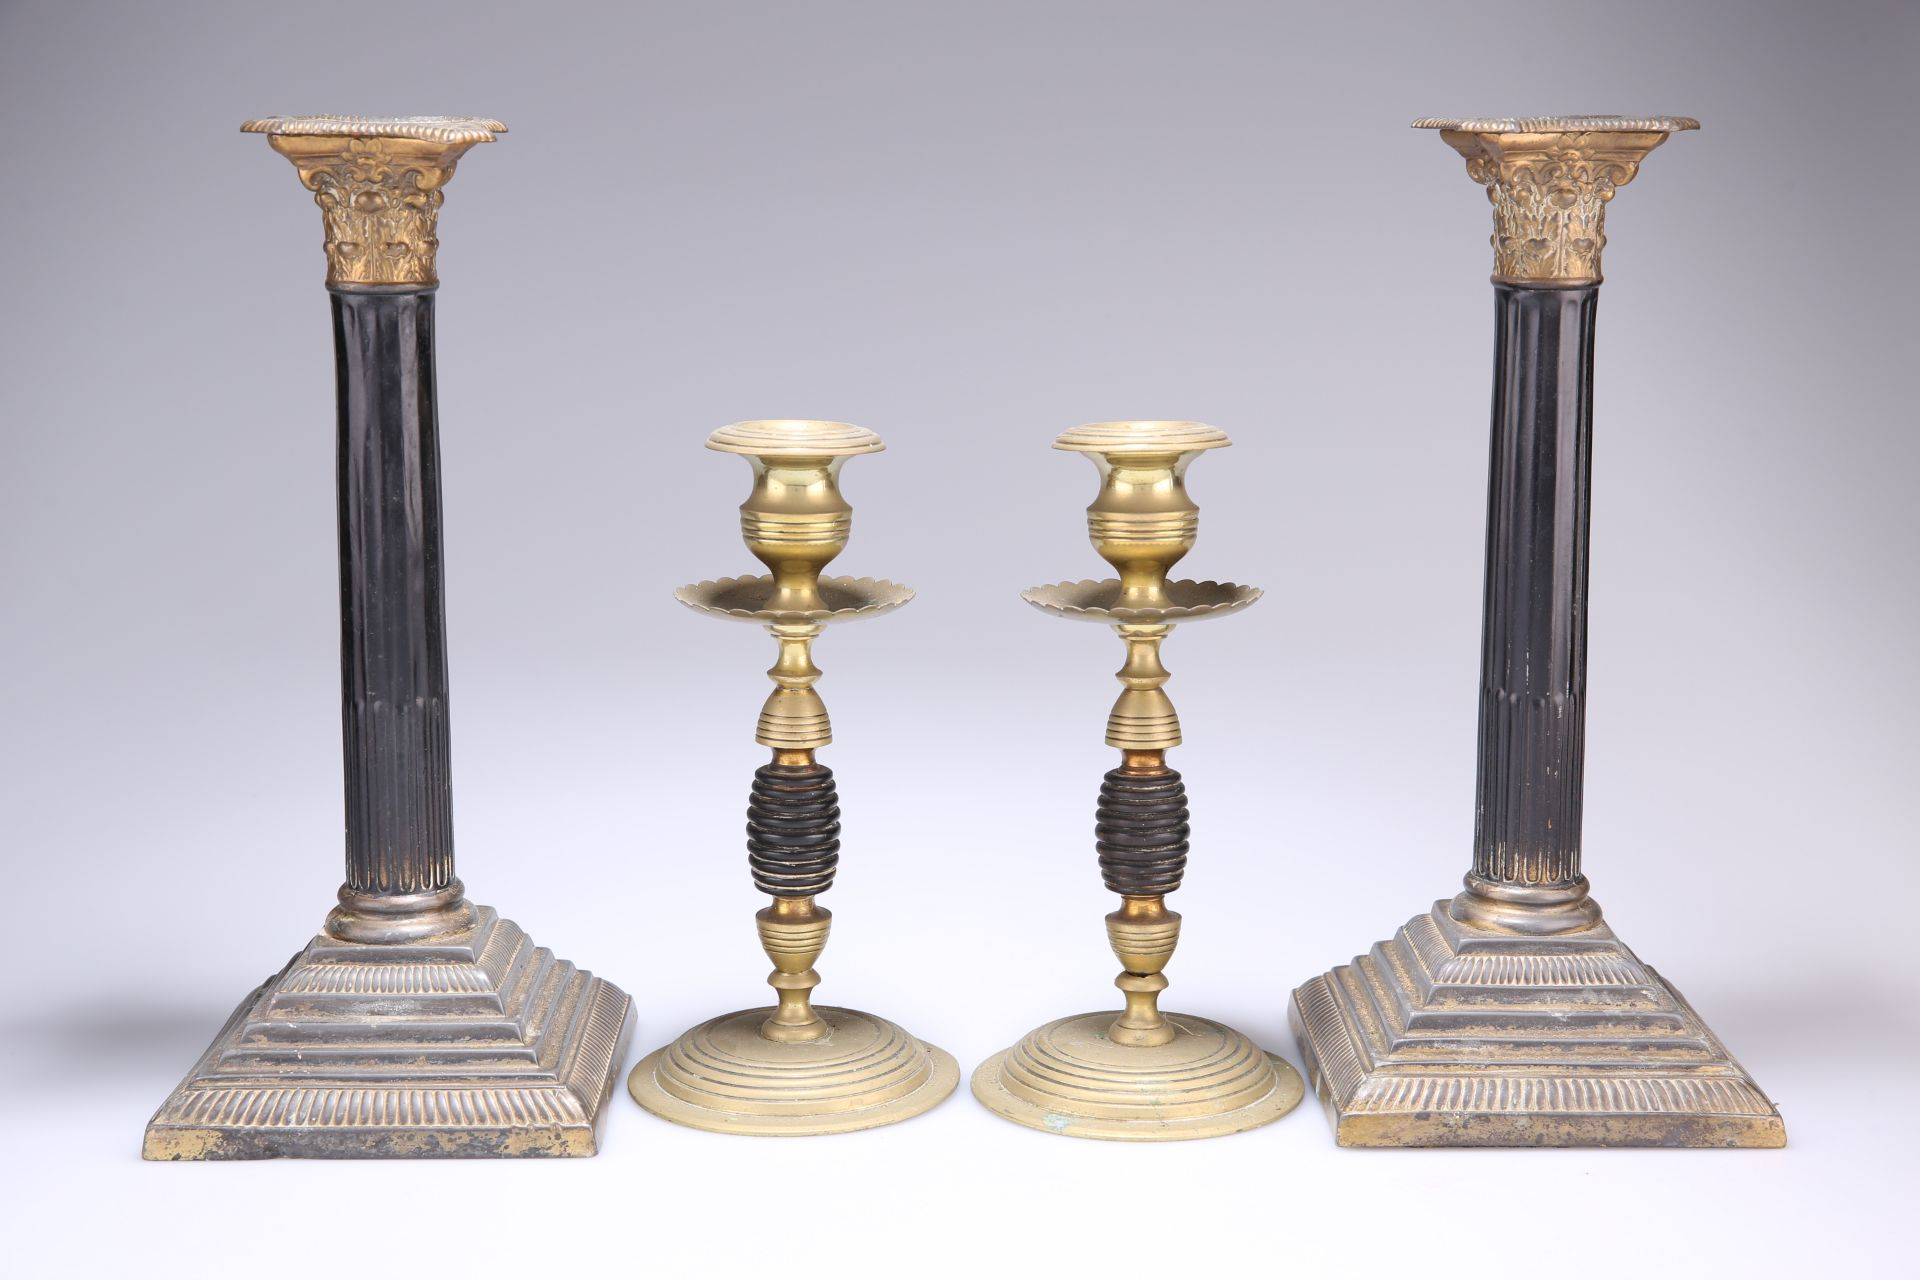 ~ A PAIR OF 19TH CENTURY GILT-BRASS AND LACQUERED CORINTHIAN COLUMN CANDLESTICKS, each with